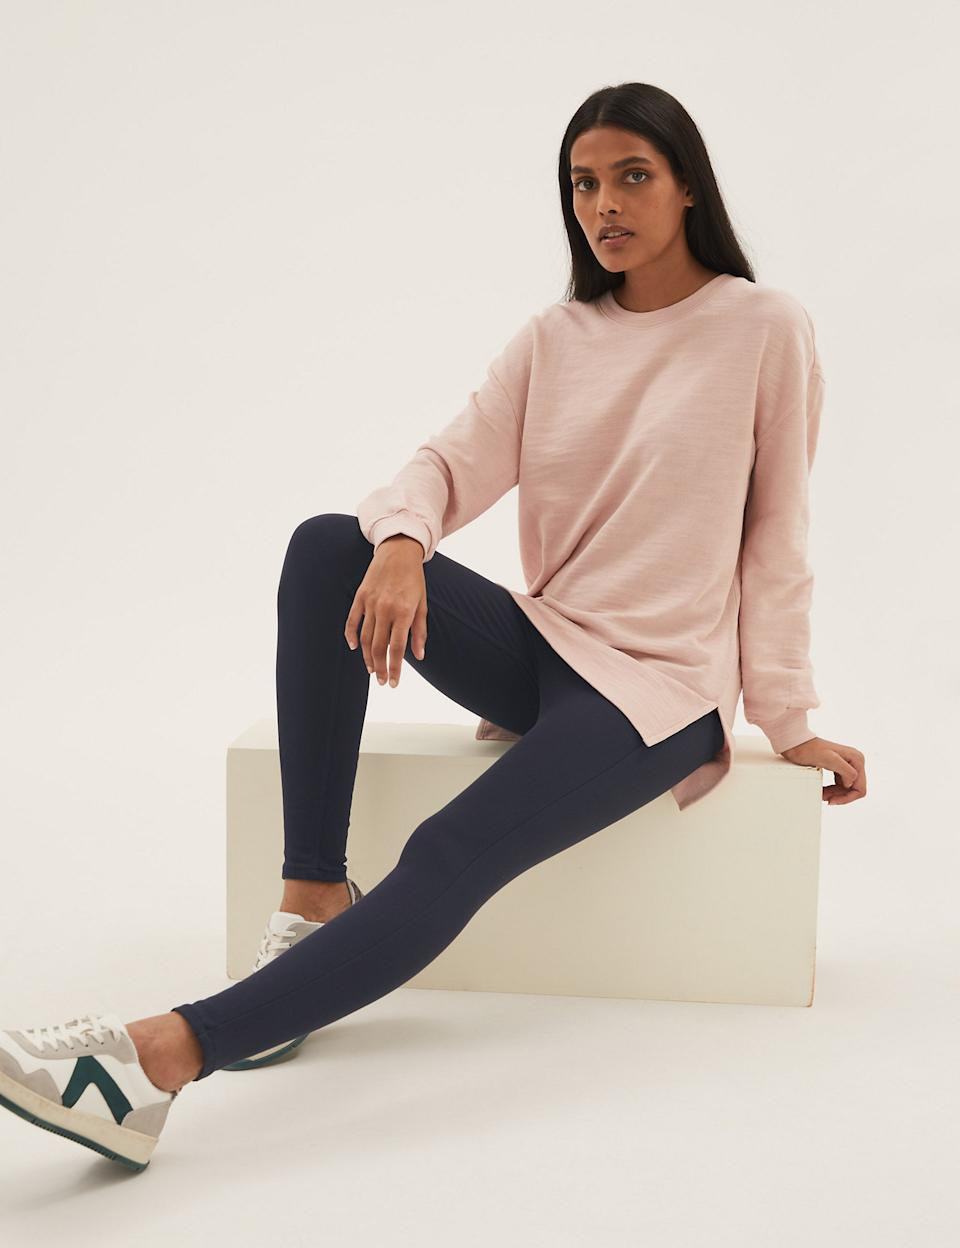 They come in four hues: navy, khaki, black and grey. (Marks & Spencer)